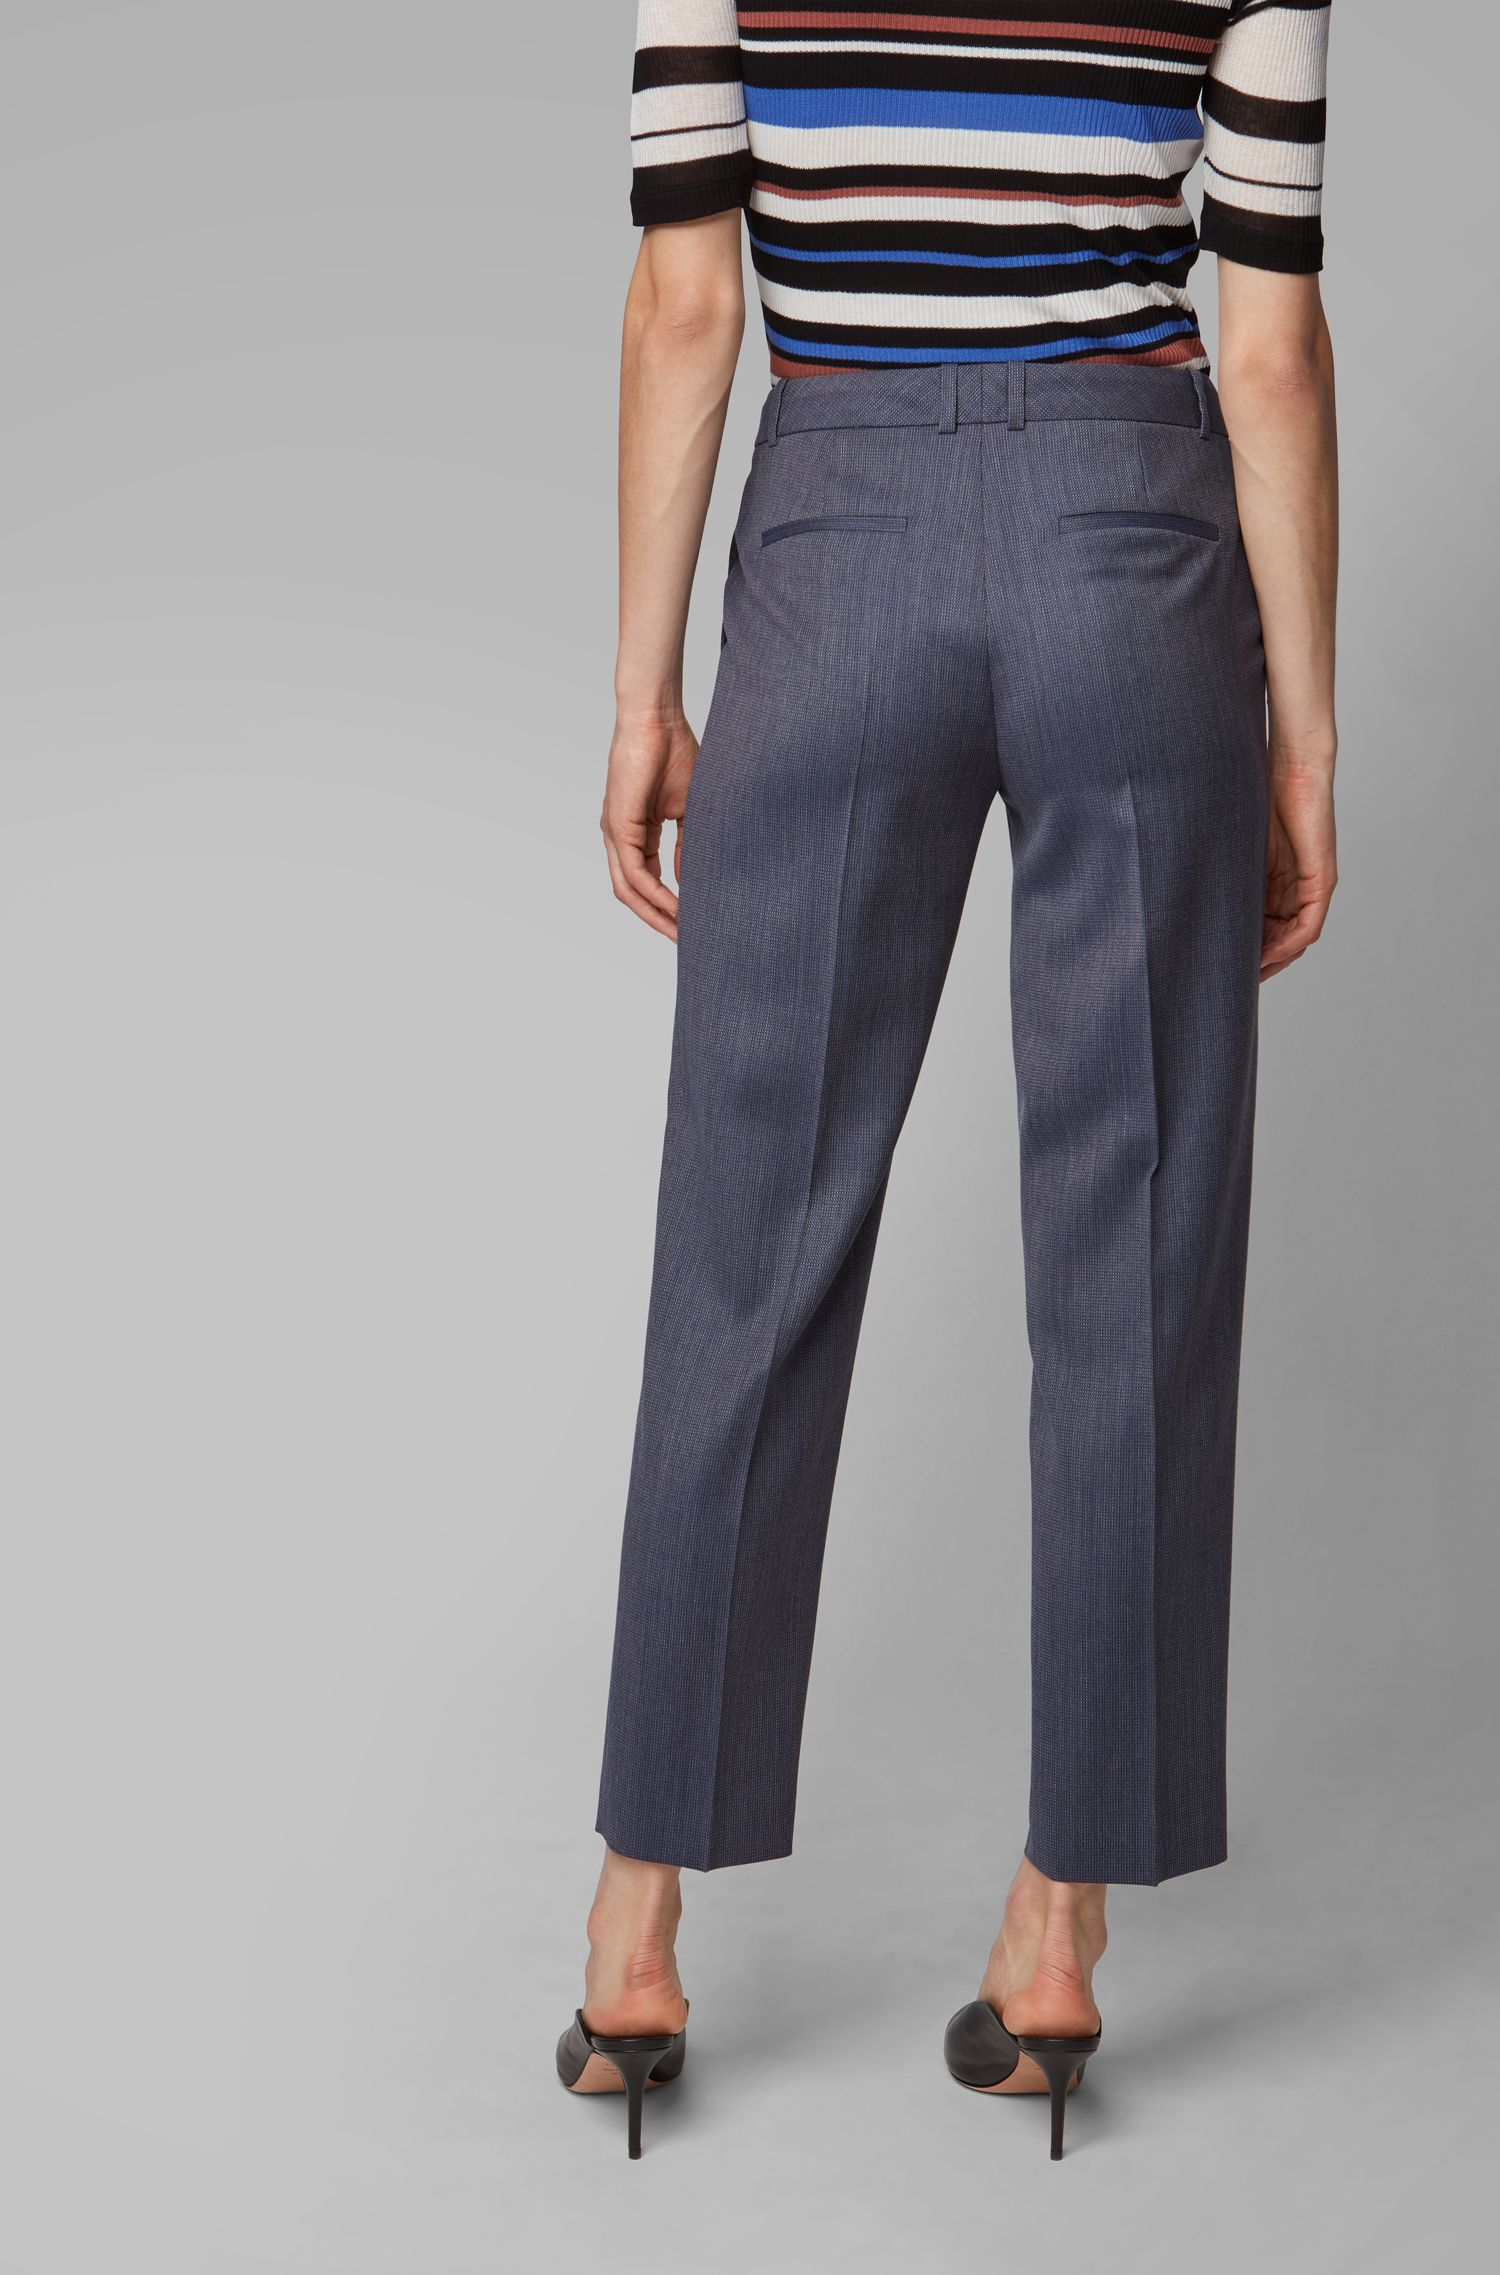 Pantaloni relaxed fit in lana vergine italiana con micromotivo, A disegni